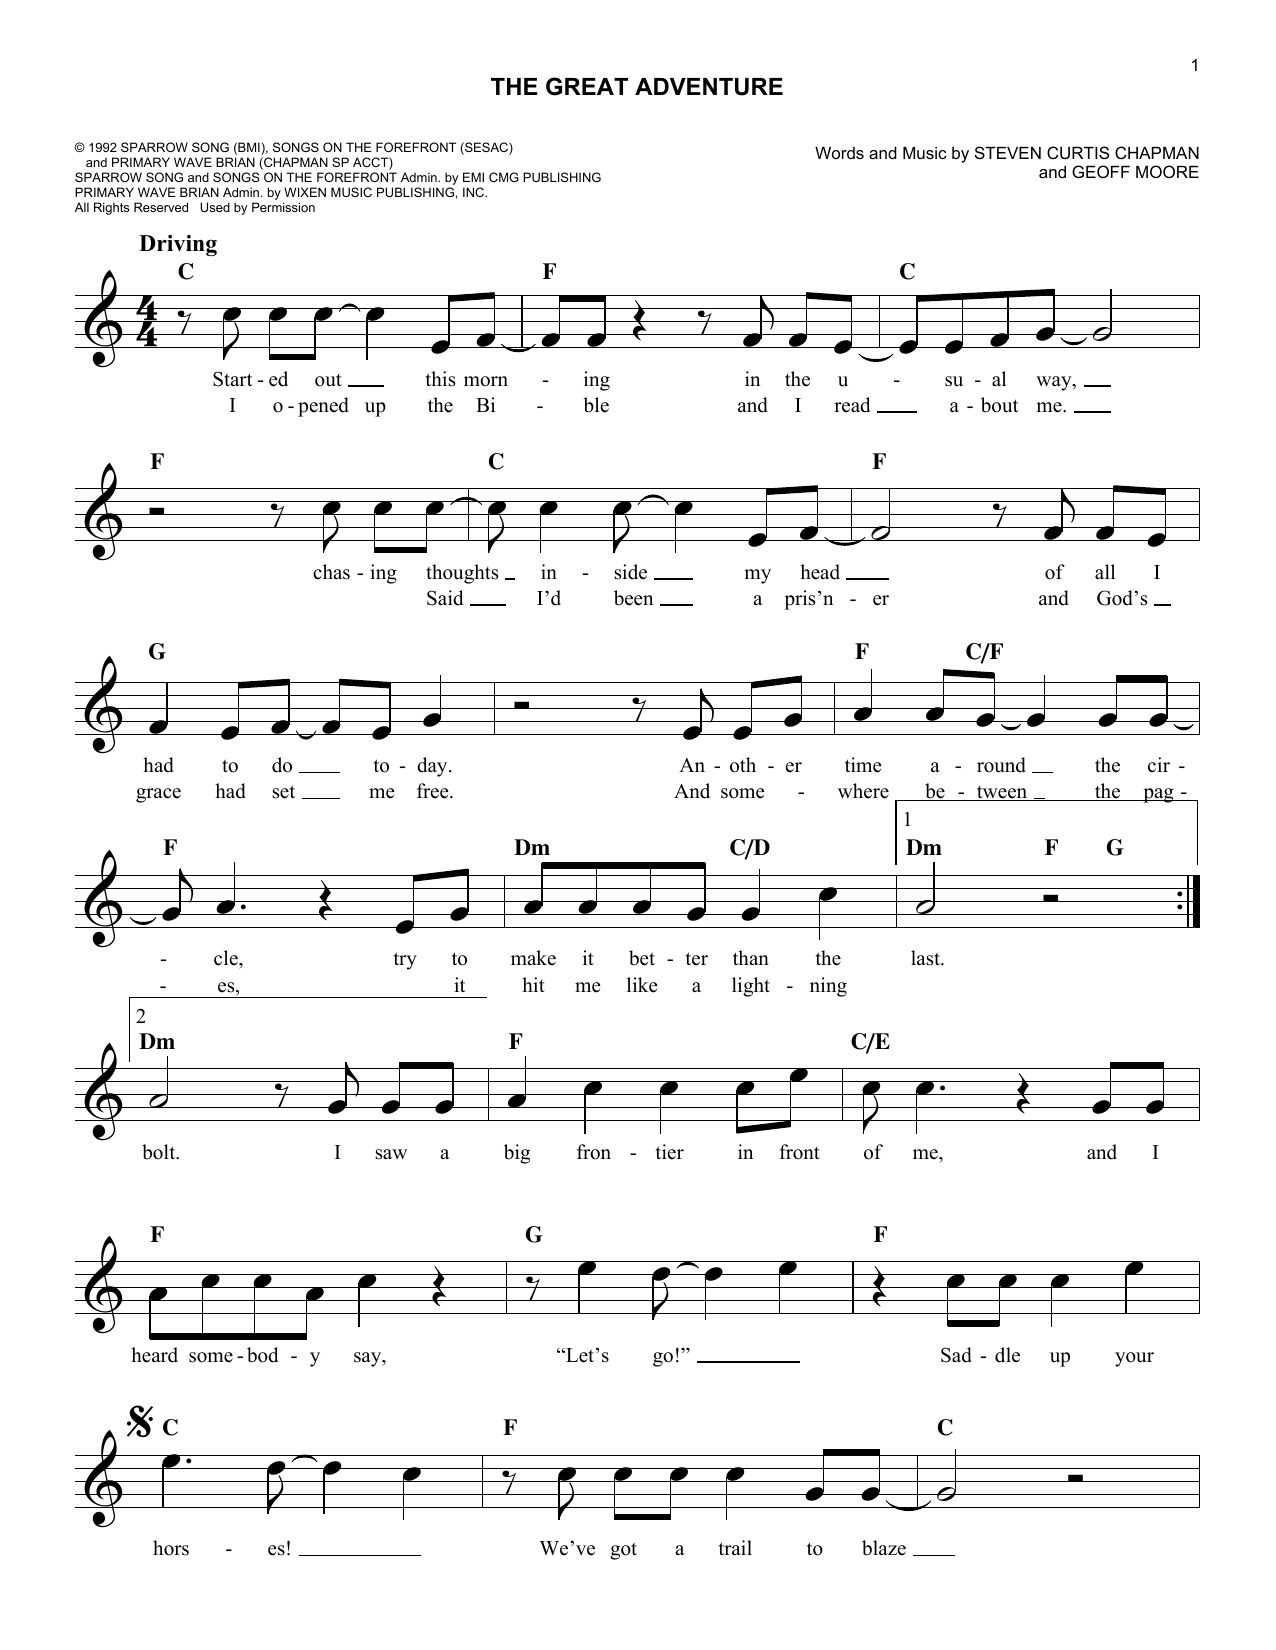 The Great Adventure Sheet Music